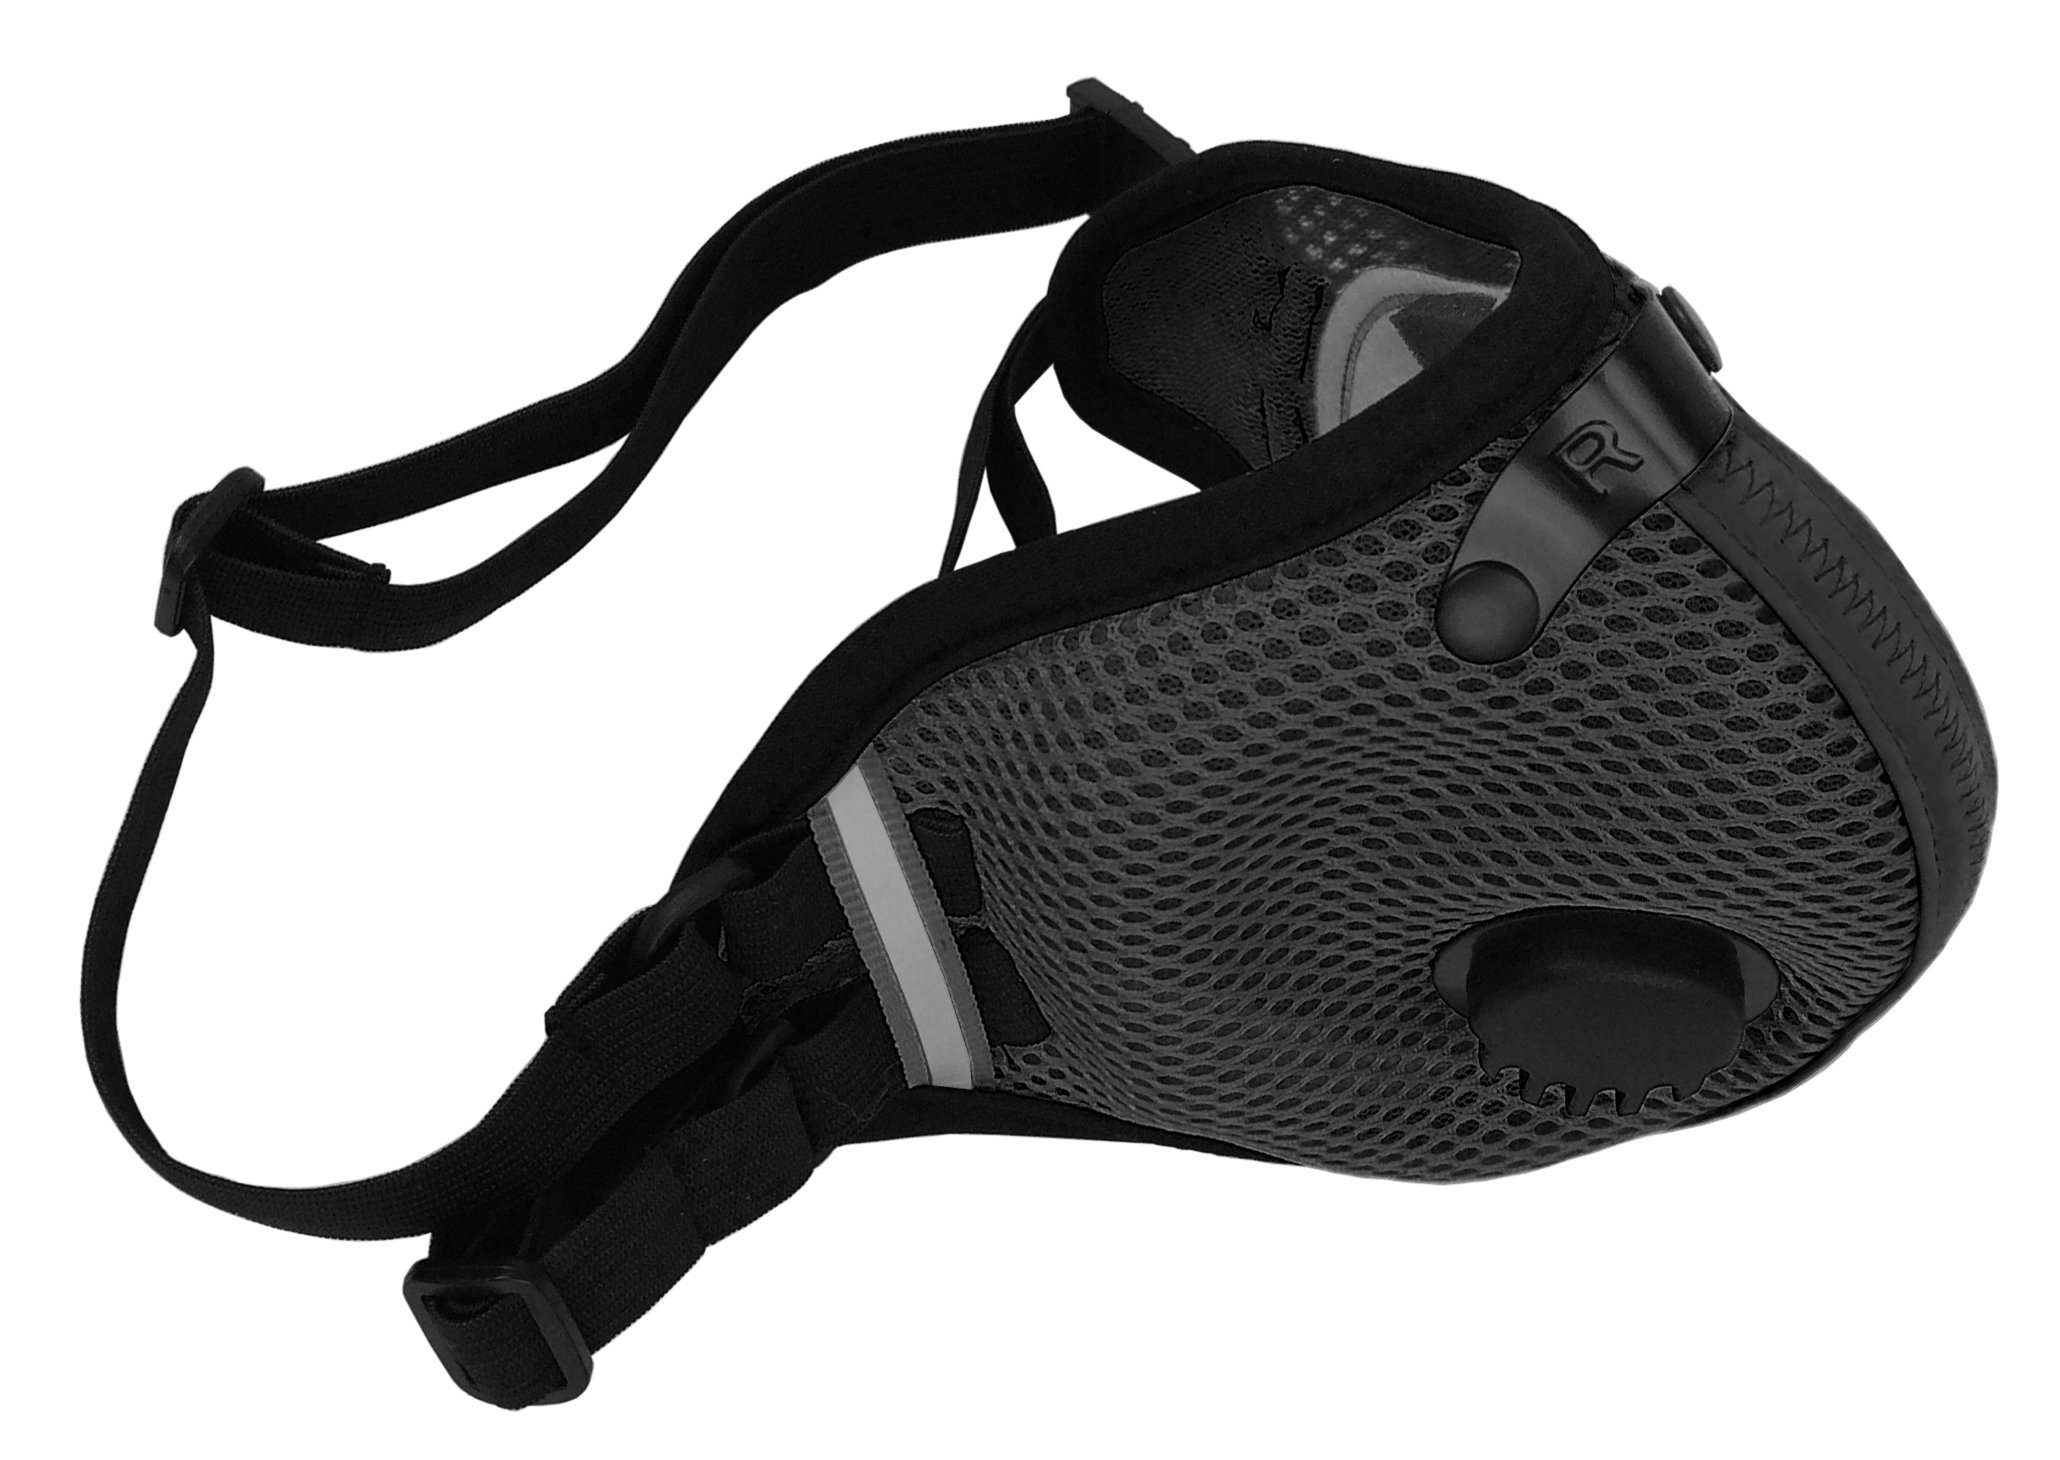 RZ M2.5 Dual Strap Mesh Dust/Air Filtration Mask Bonus Pack Mask Washable New Adjustable Straps Allergy/Asthma/Construction/Woodworking/Pollution/Adult (Large (125lbs - 215lbs), Black) by RZ Mask (Image #3)